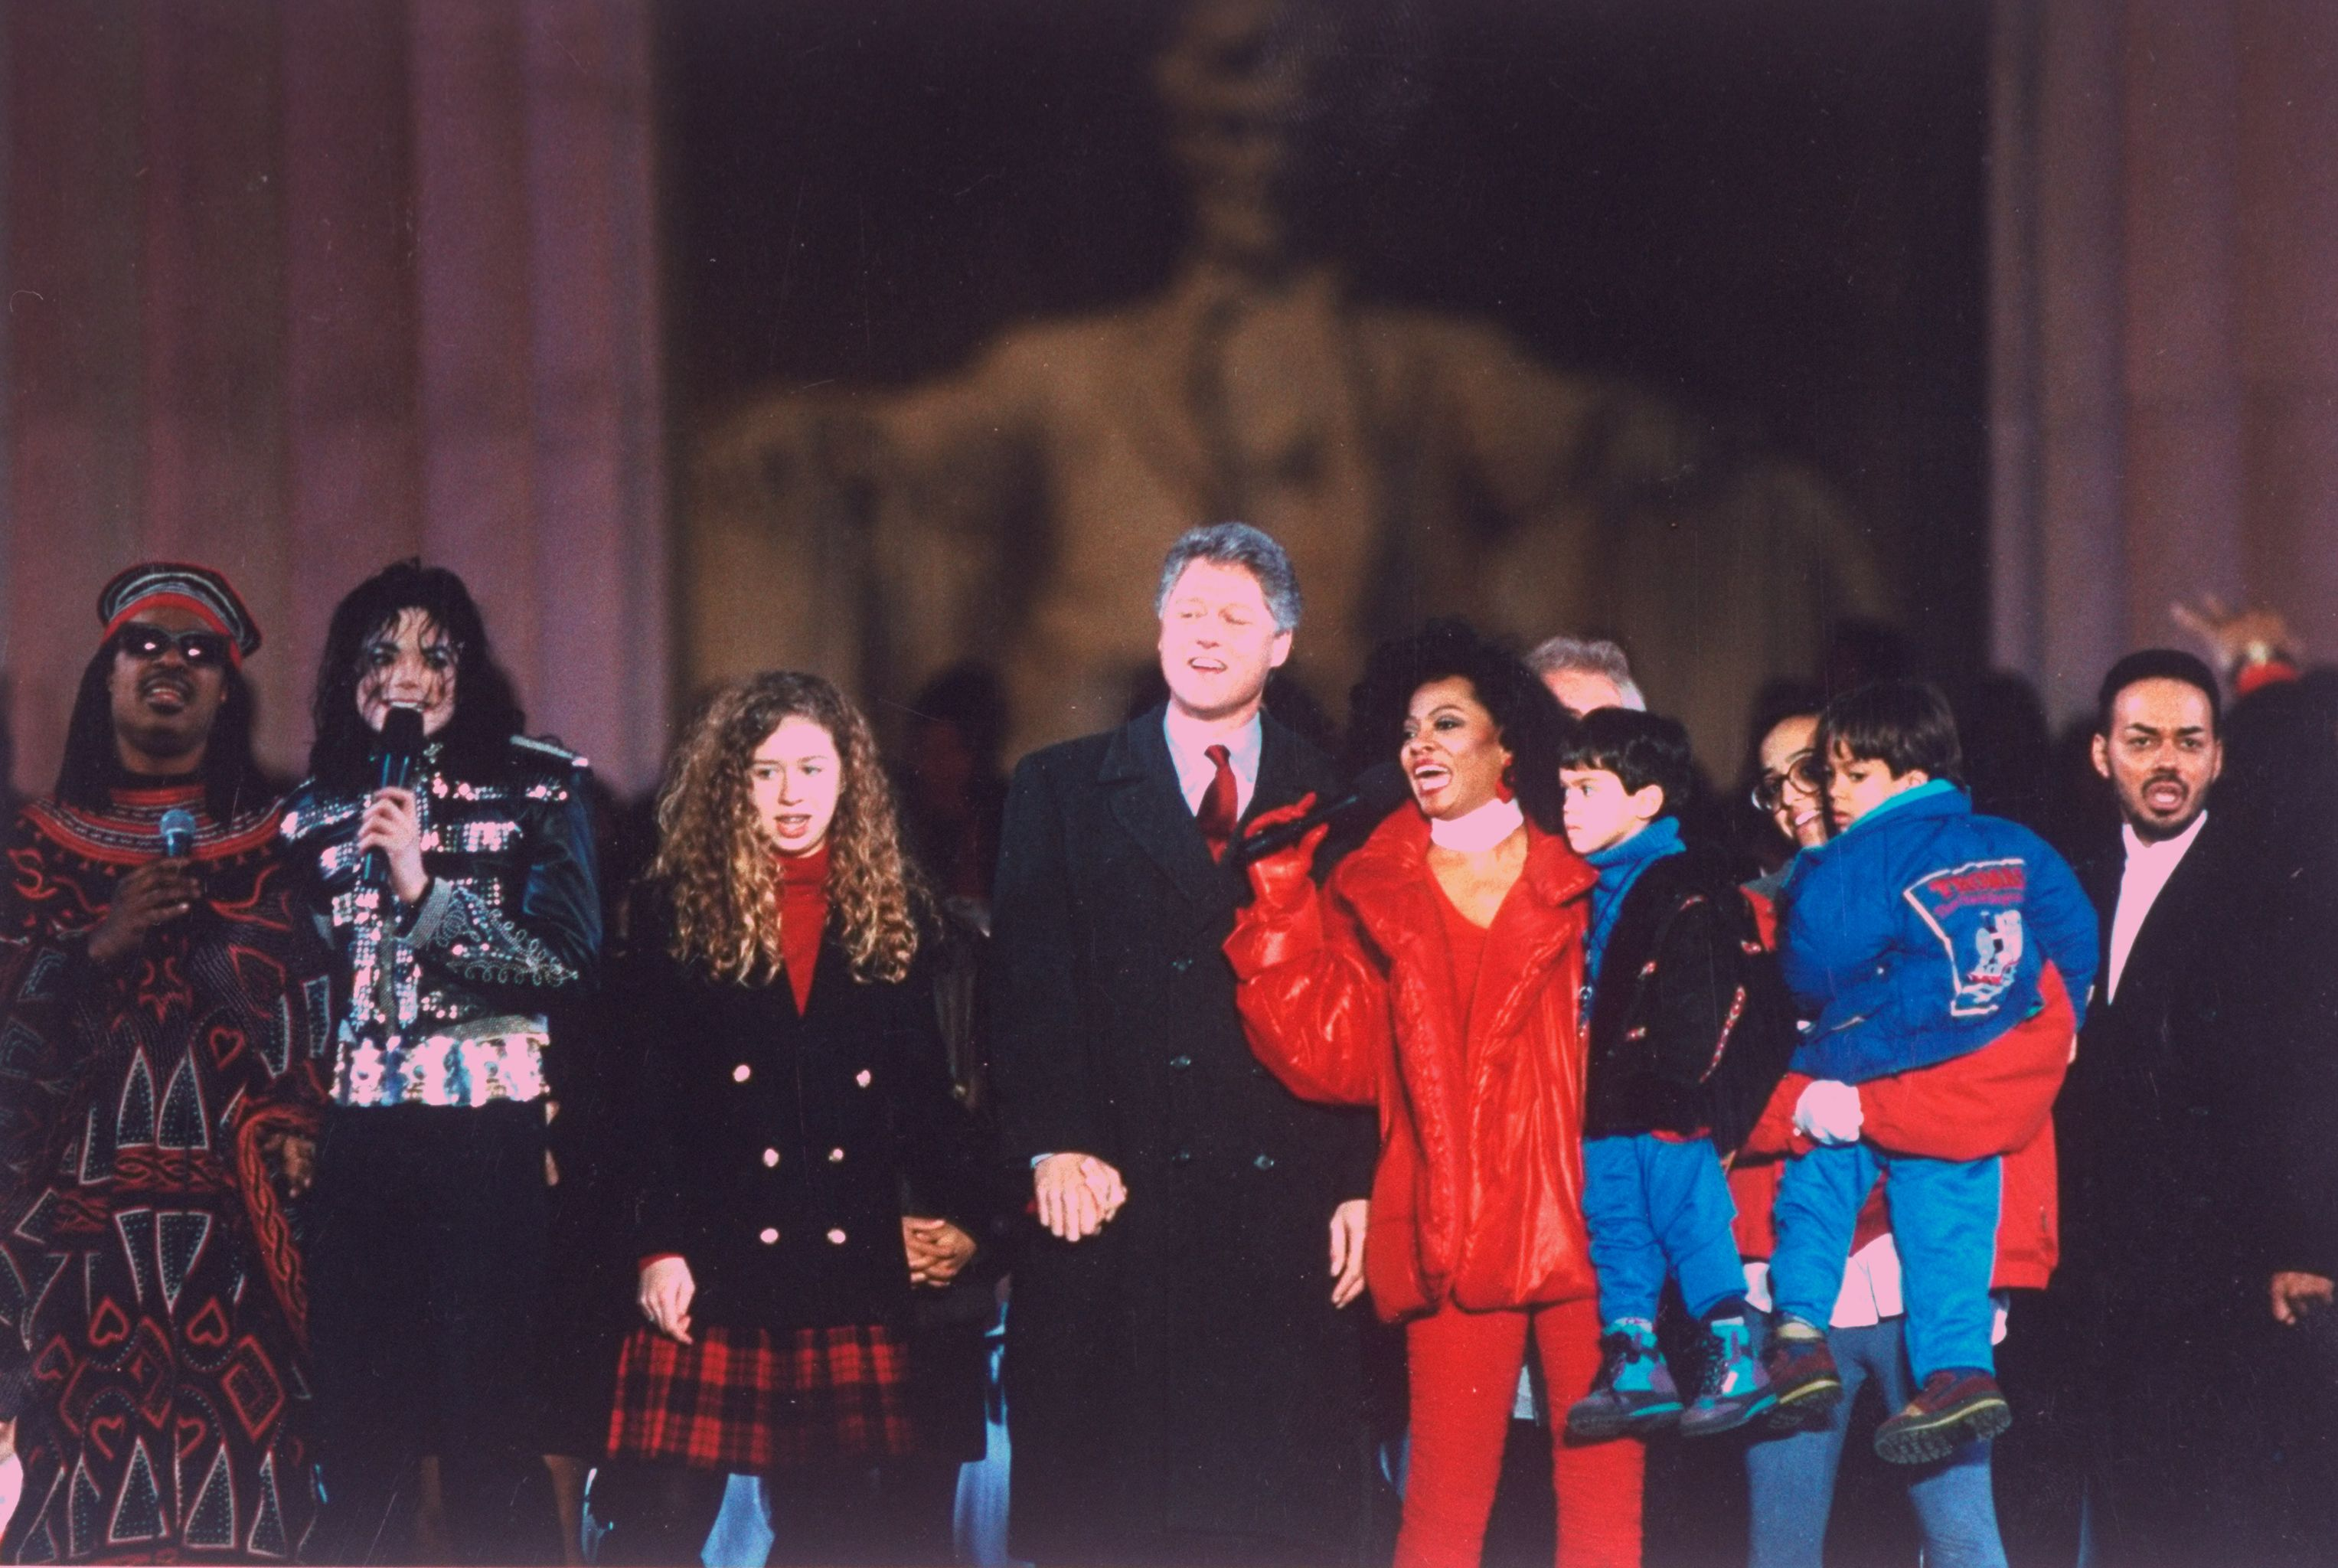 Stevie Wonder, Michael Jackson, and Diana Ross With Bill Clinton Many celebrities were thrilled when Bill Clinton was elected the 42nd president of the United States. Just before his inauguration, to celebrate cultural diversity, the likes of MJ, Diana Ross, and Stevie Wonder performed in a two-day festival called America's Reunion on the Mall .